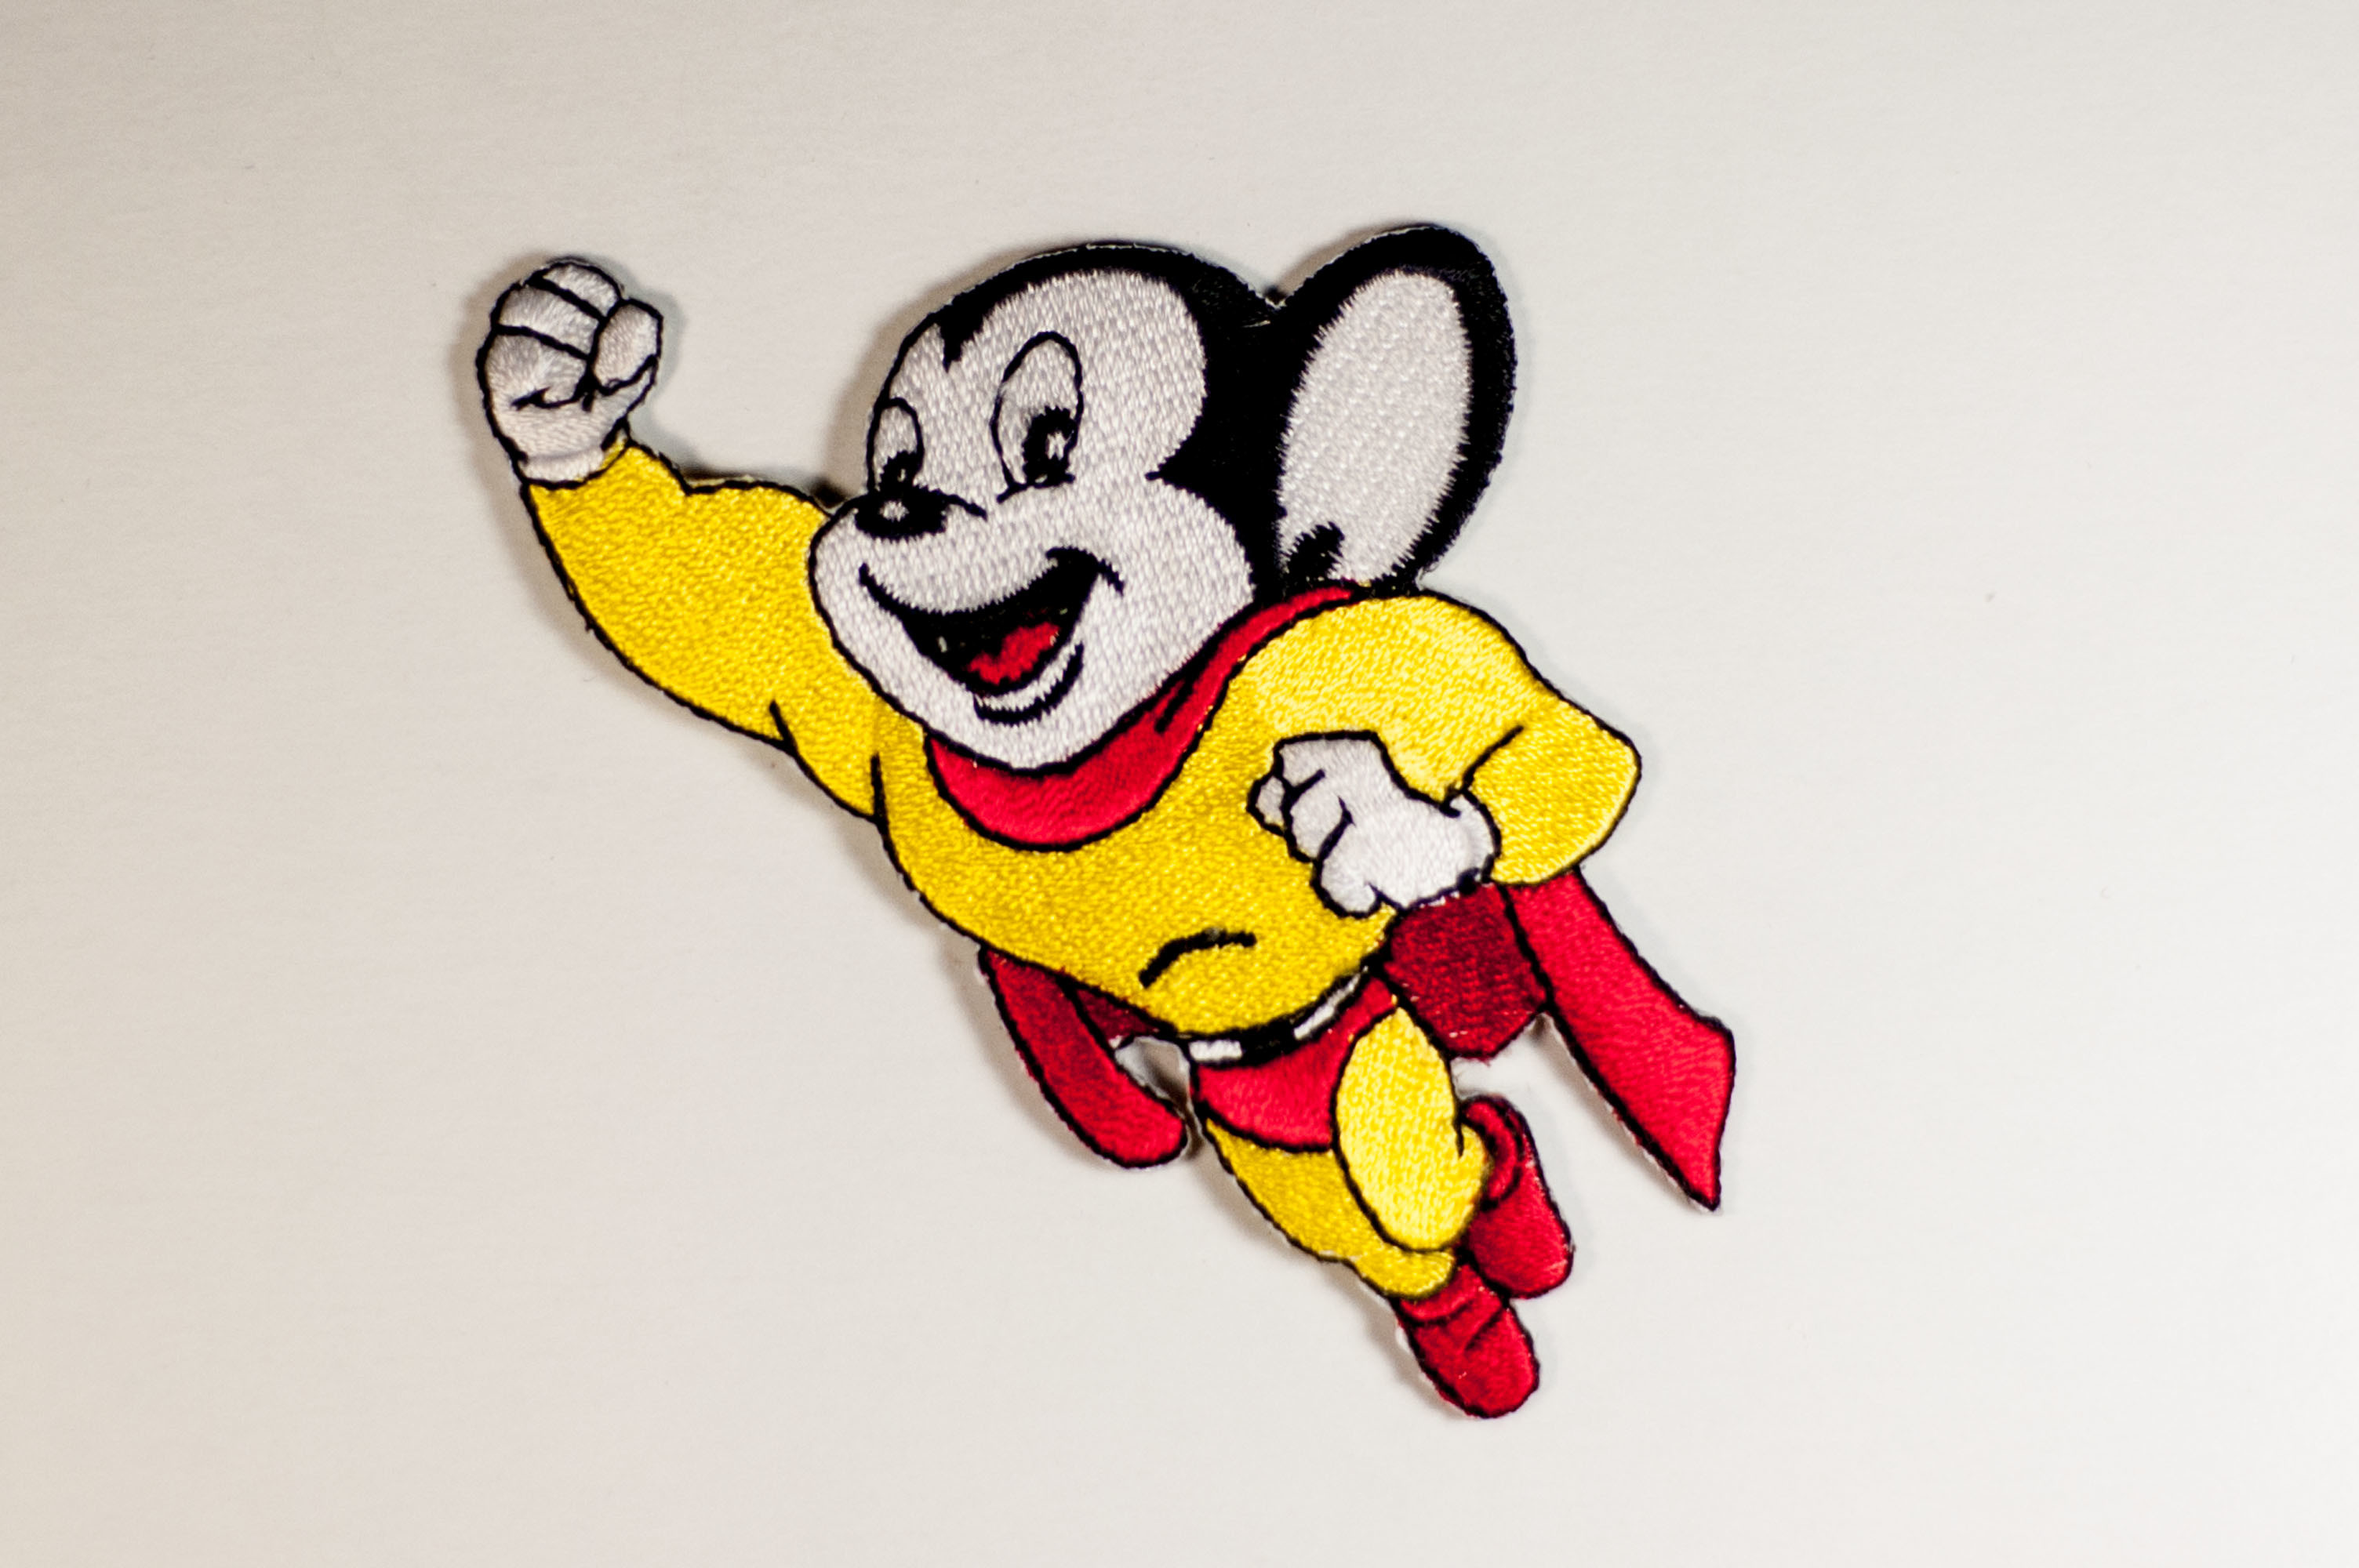 Res: 3008x2000, Mighty Mouse Figure